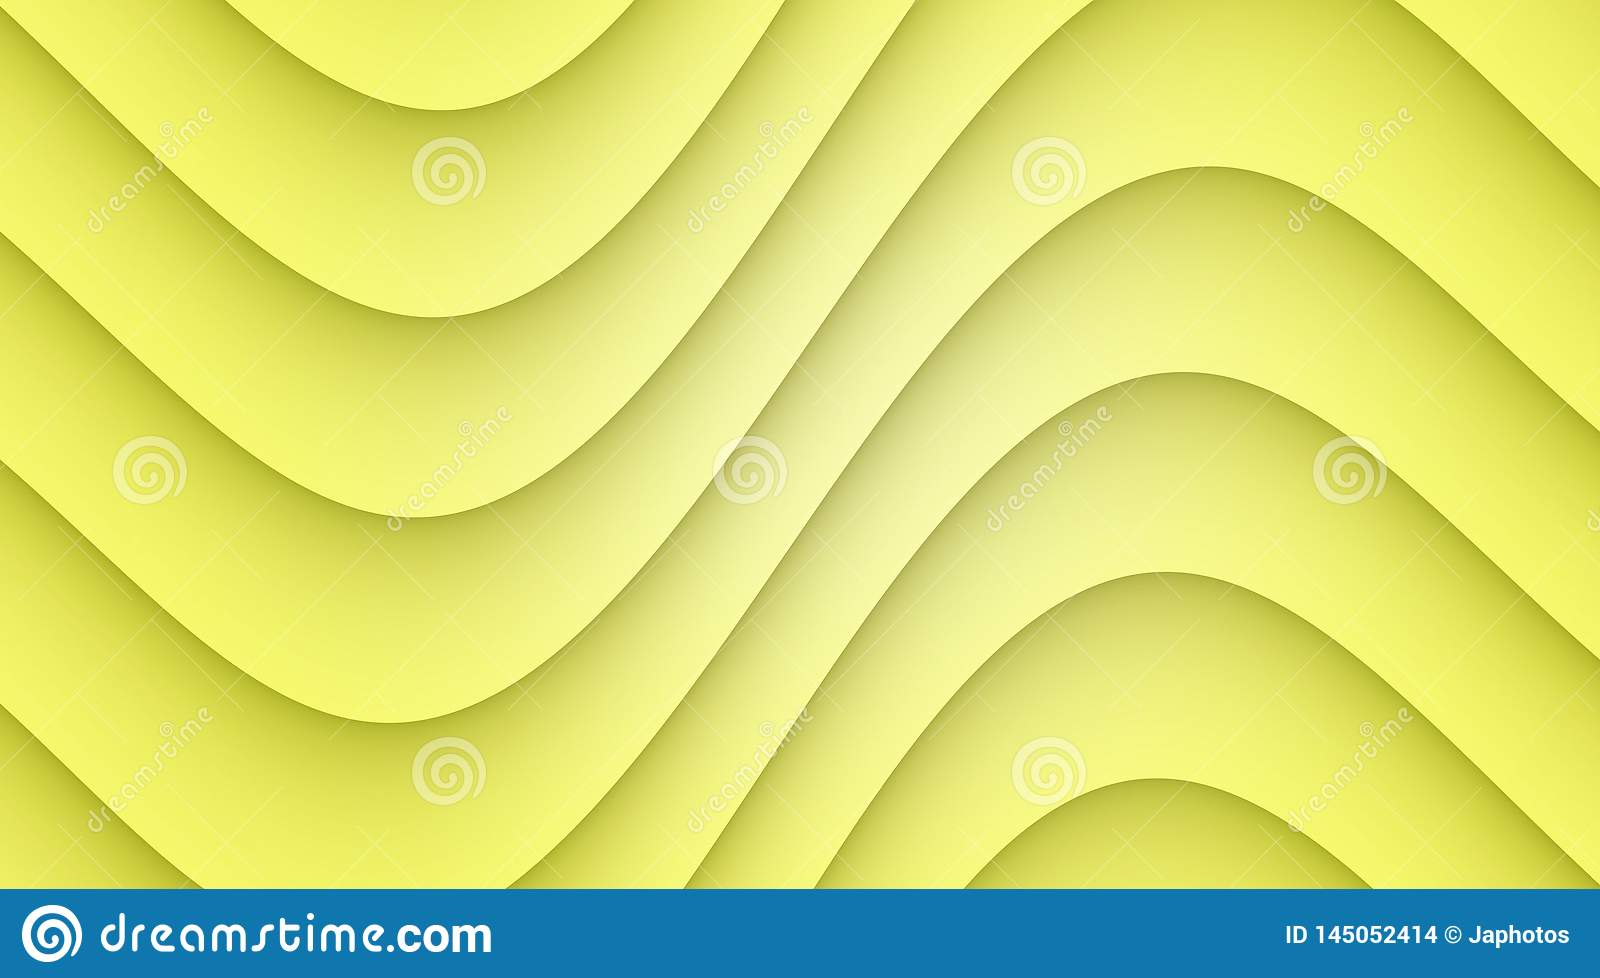 Lemon Yellow Smooth Symmetric Curves Abstract Wallpaper Background